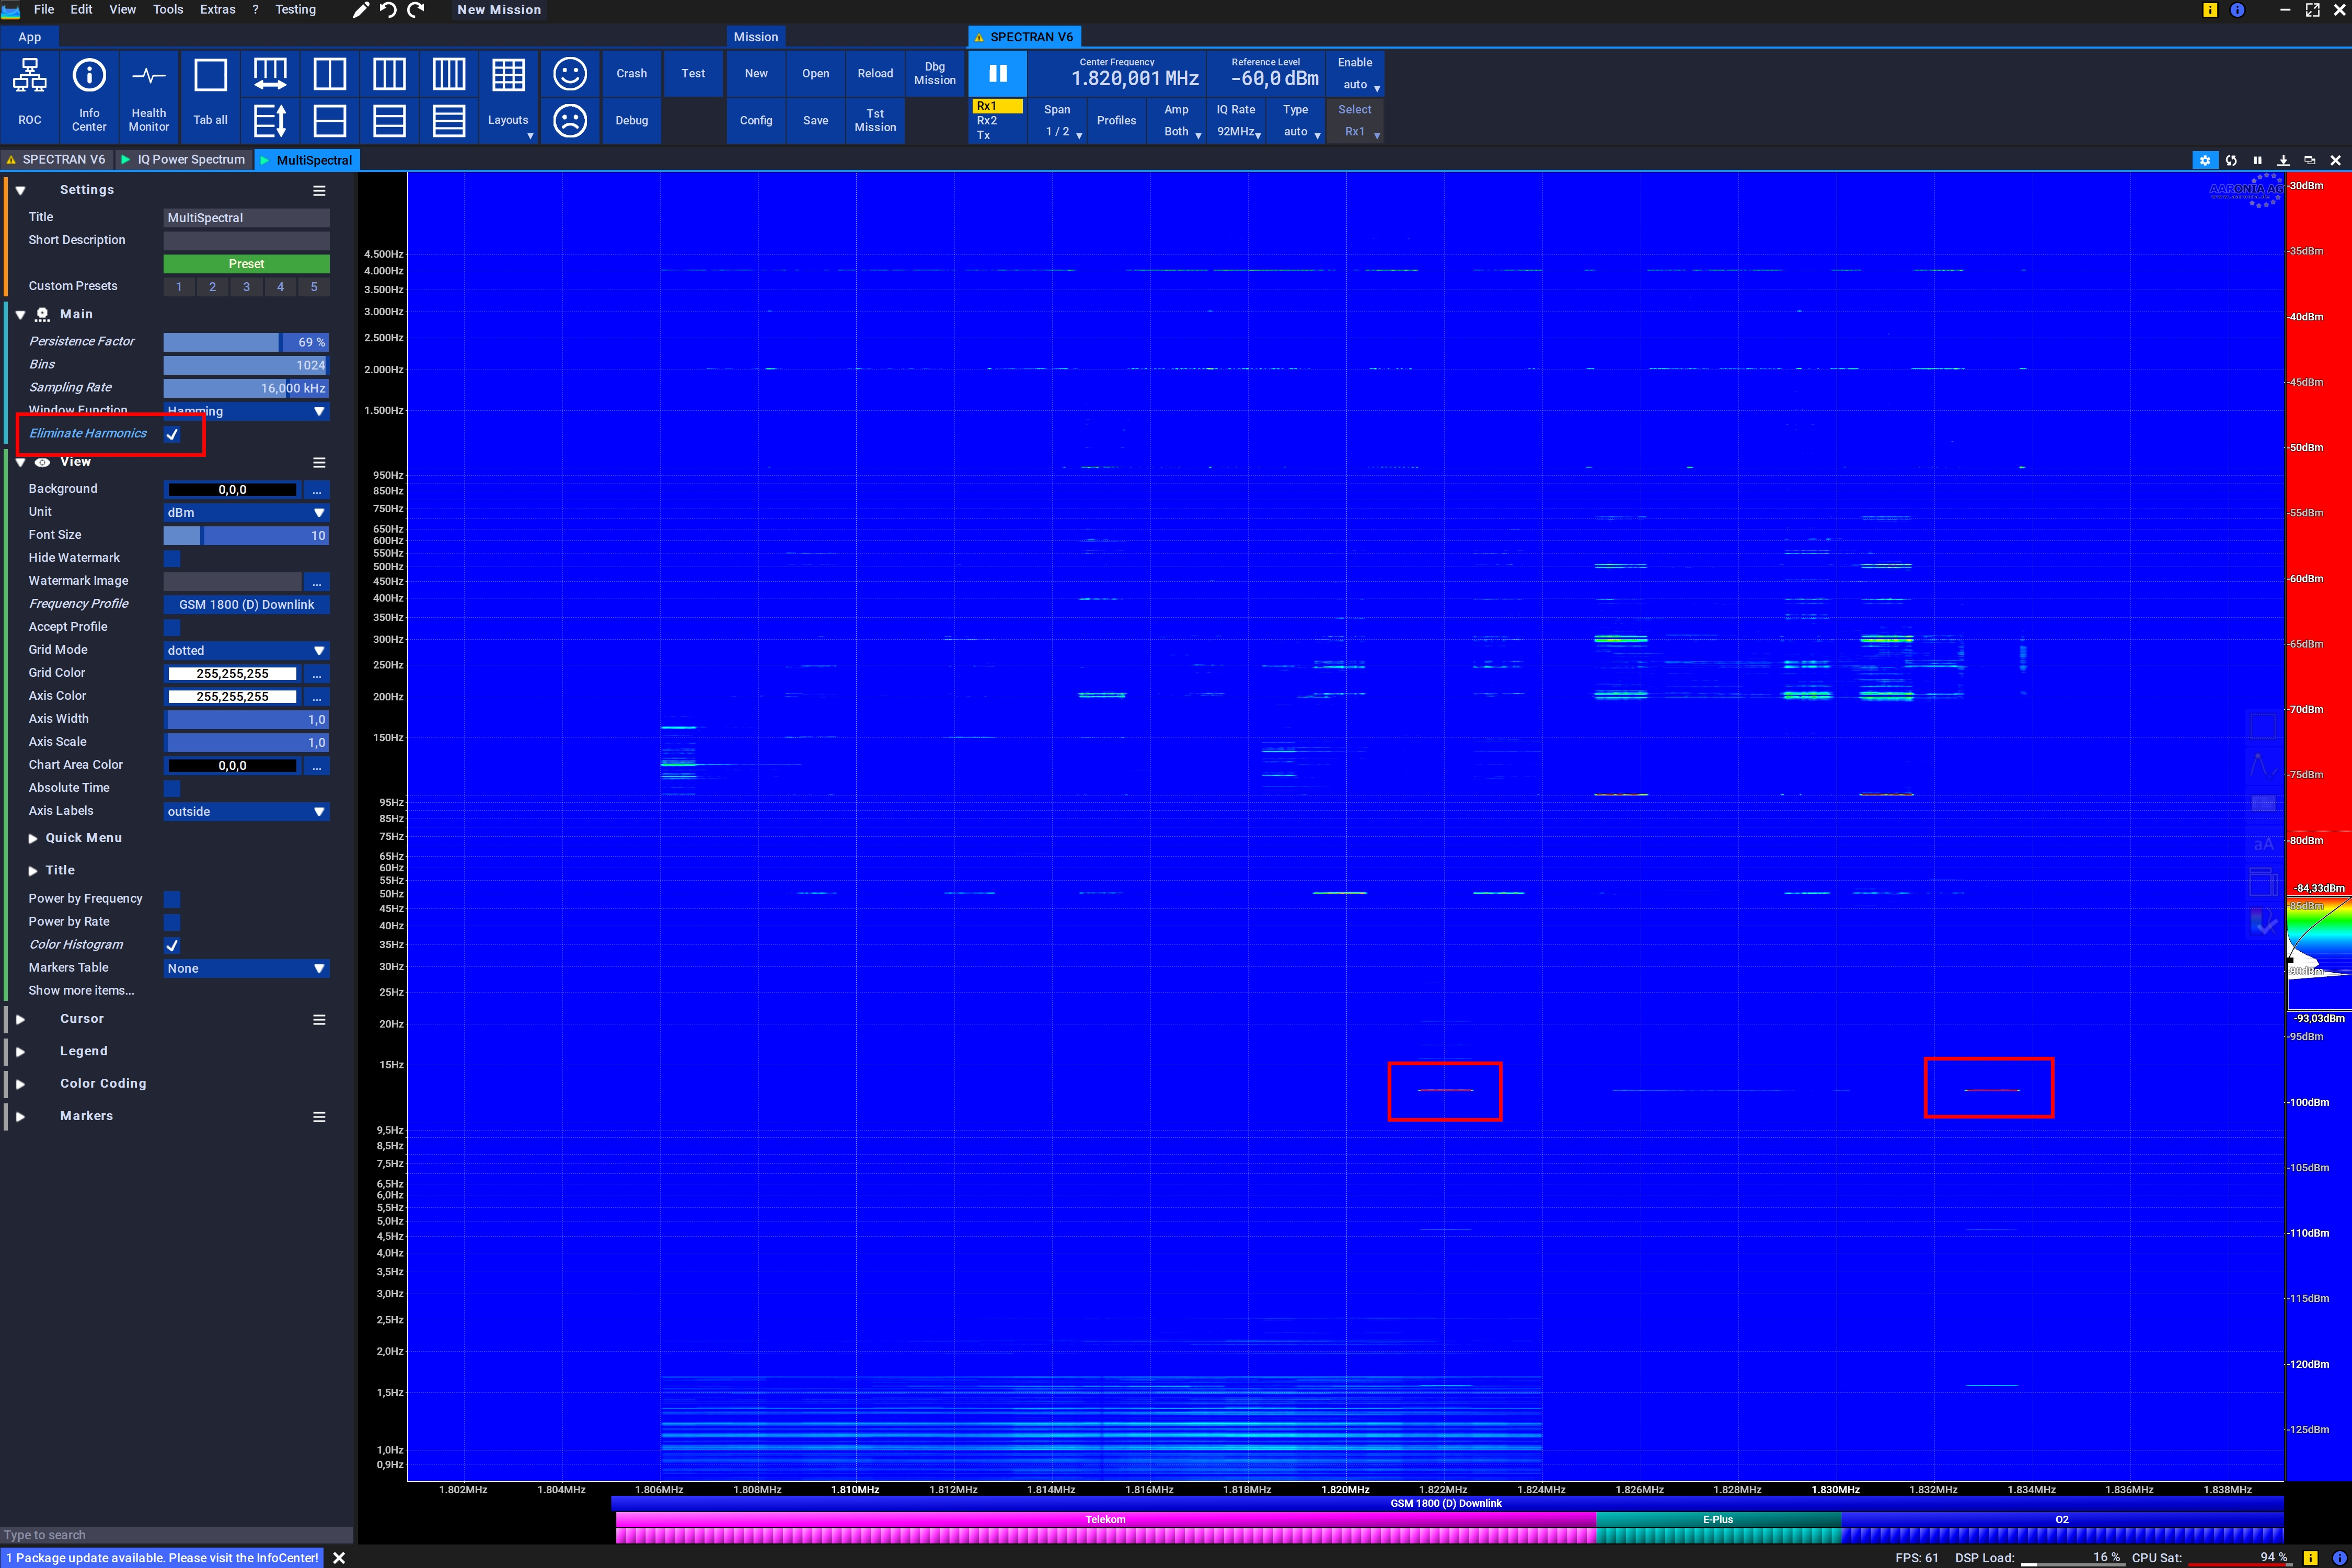 MultiSpectral showing all LTW Basestations and corresponding pulsed signals